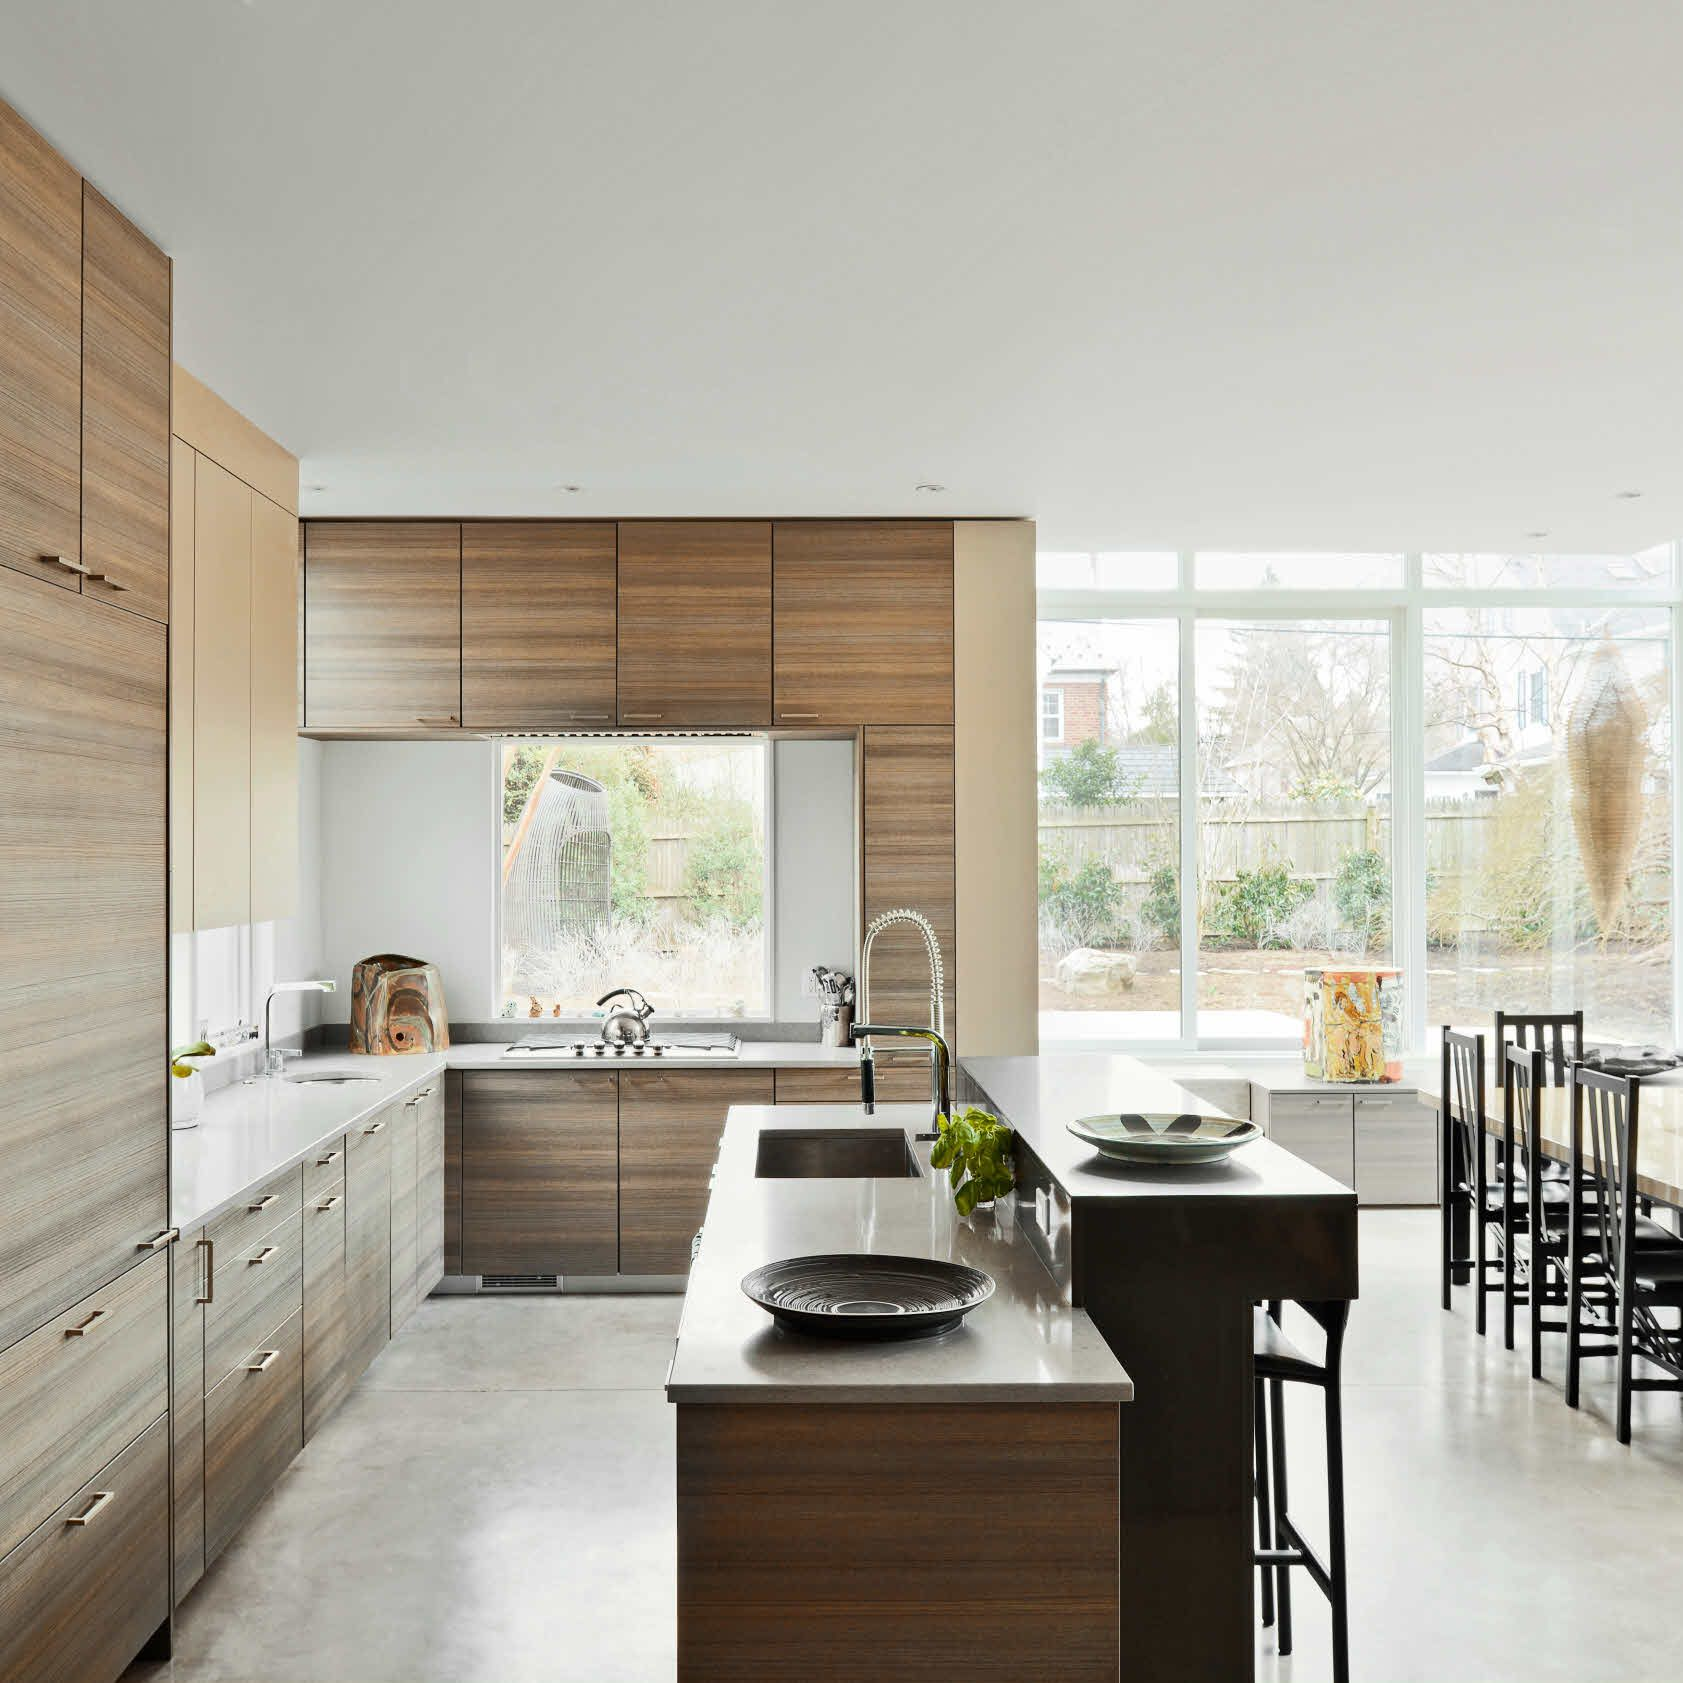 The old galley kitchen had to go. In its place, a fully-equipped ...